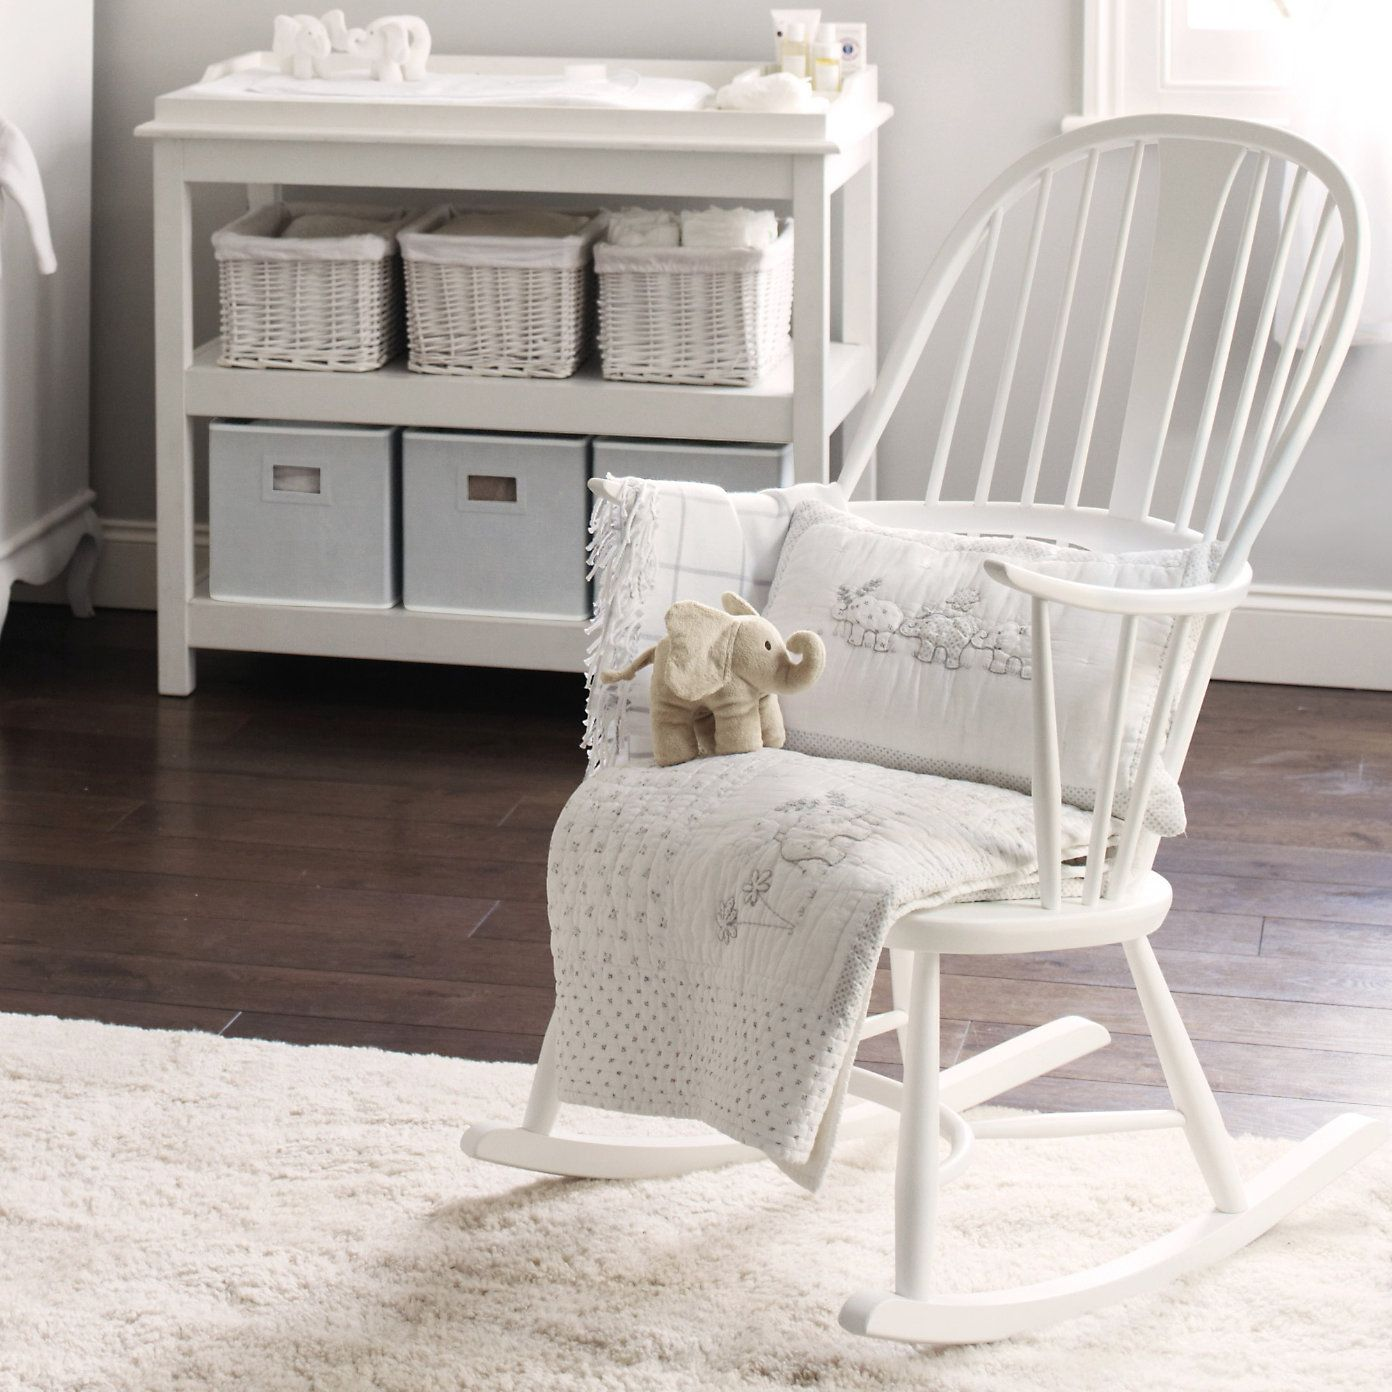 White Nursery Rocking Chair Ercol Rocking Chair Ercol Furniture The White Company